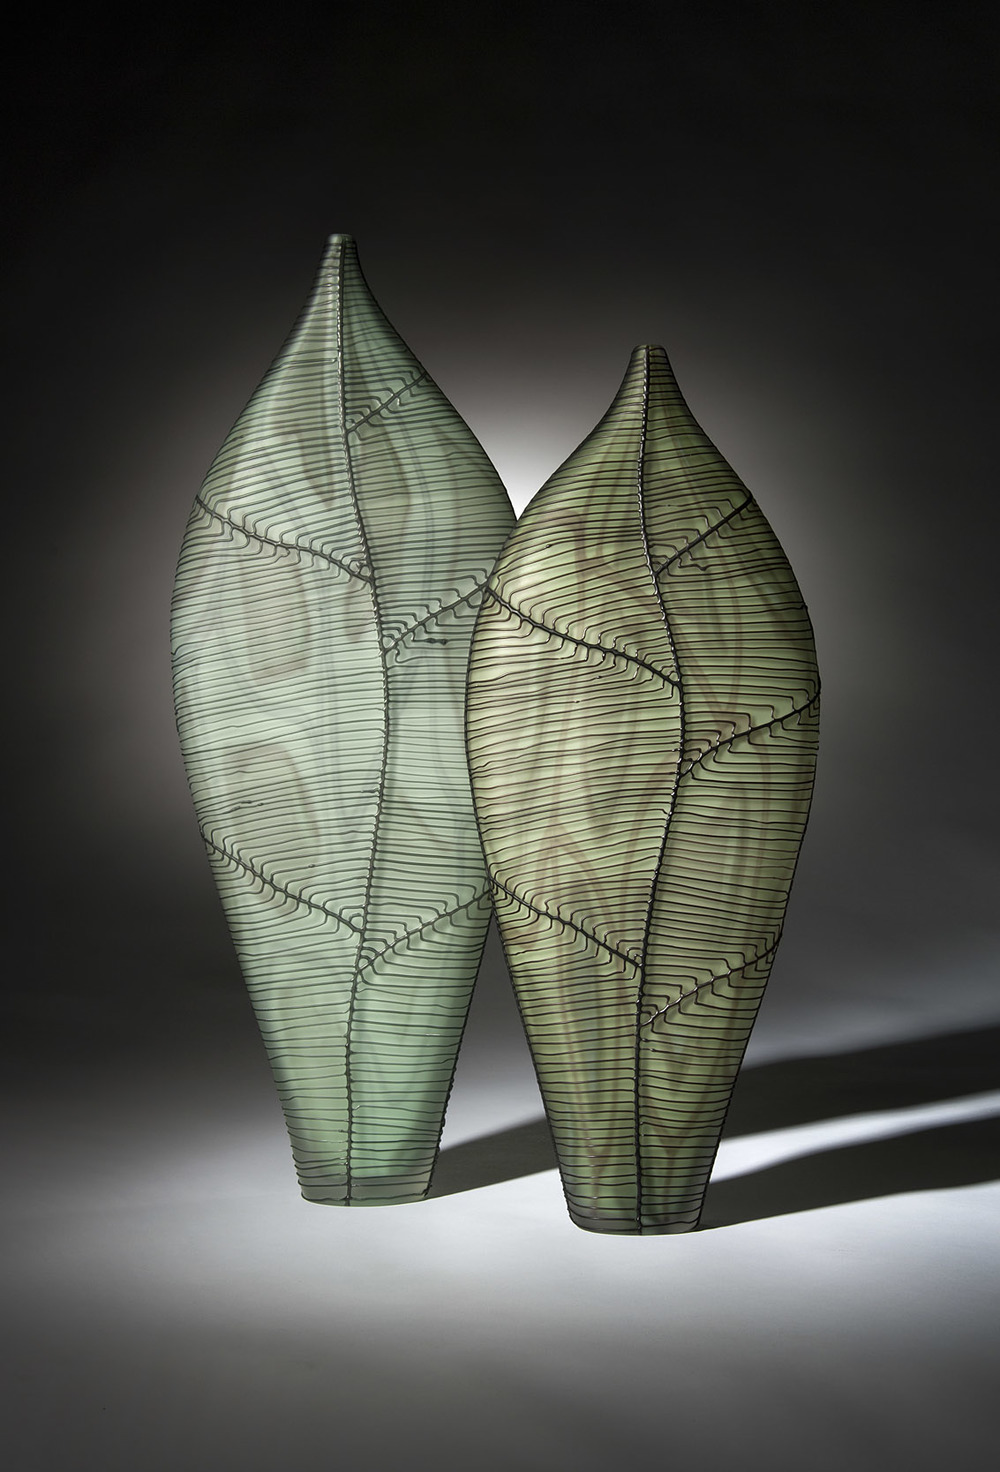 Leaf Circuitry, pair, 2012 In the collection of the Corning Museum of Glass, USA